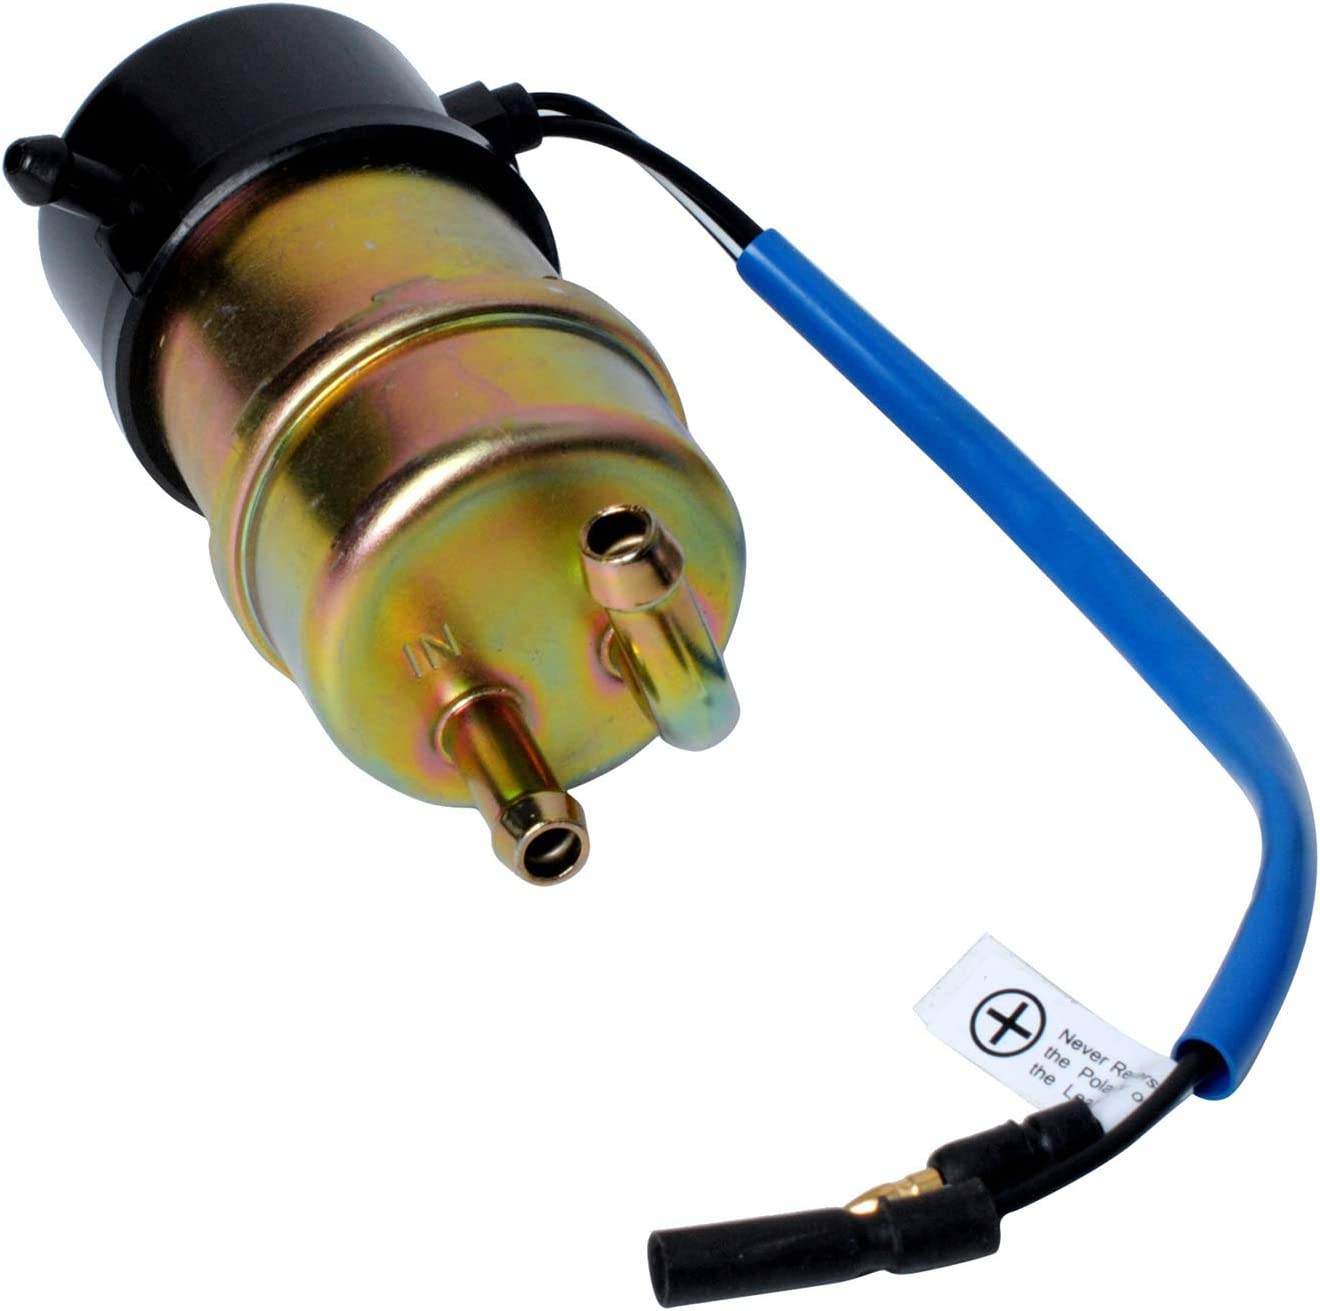 16710-HA7-672 Fuel Pump Fit 86-89 Honda Fourtrax 16710HA7672 TRX-350 TRX-350D TRX 350 350D 4x4 by Wadoy